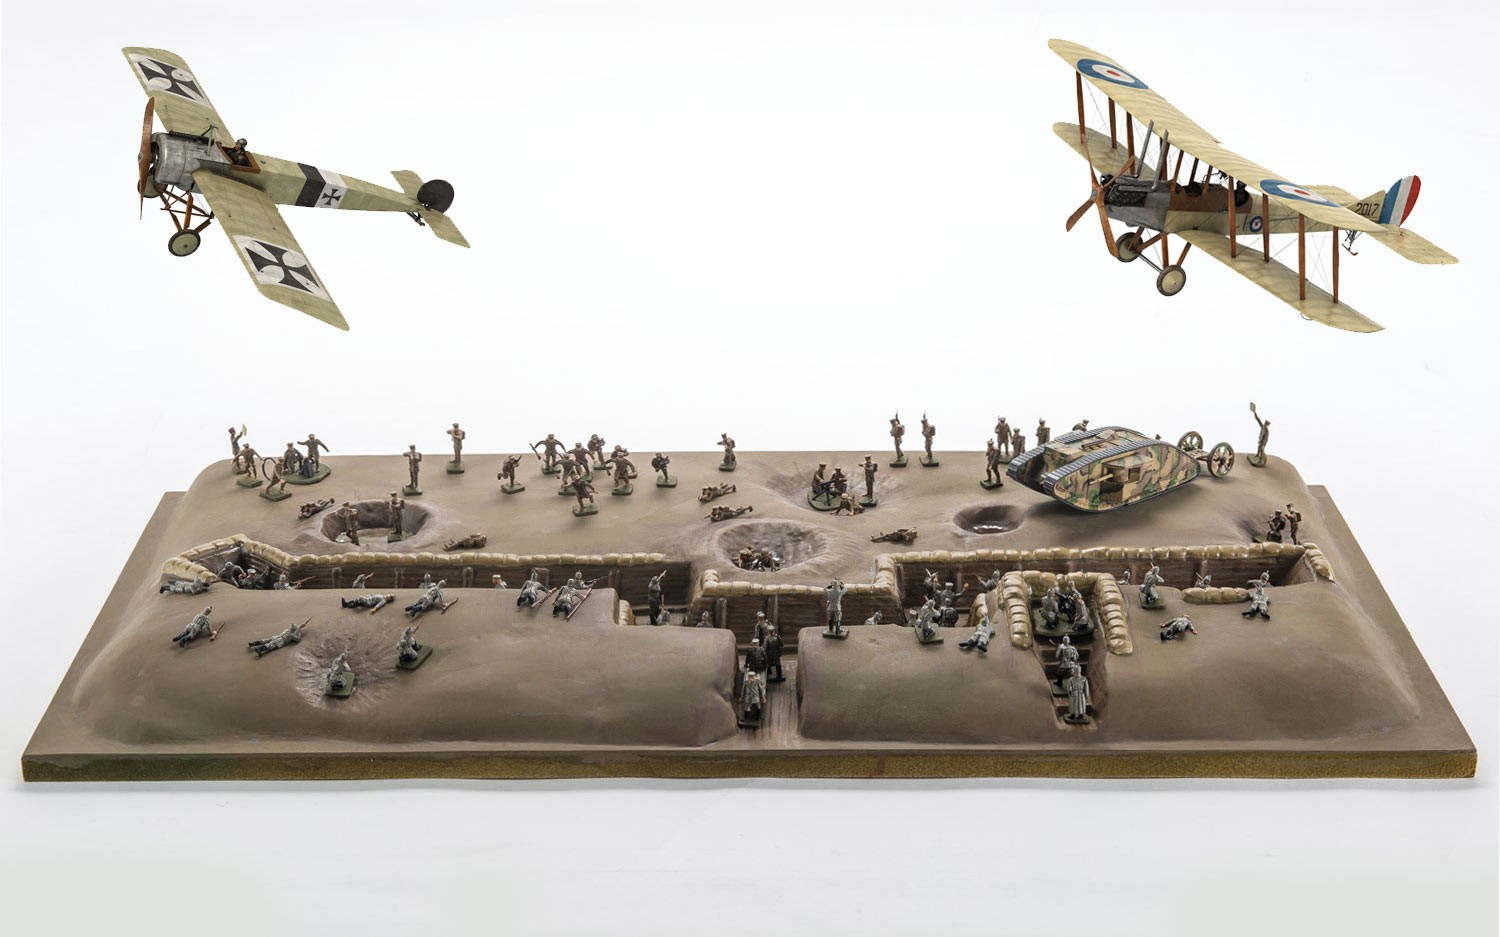 Airfix 1/72 Battle of the Somme Centenary Gift Set # 50178